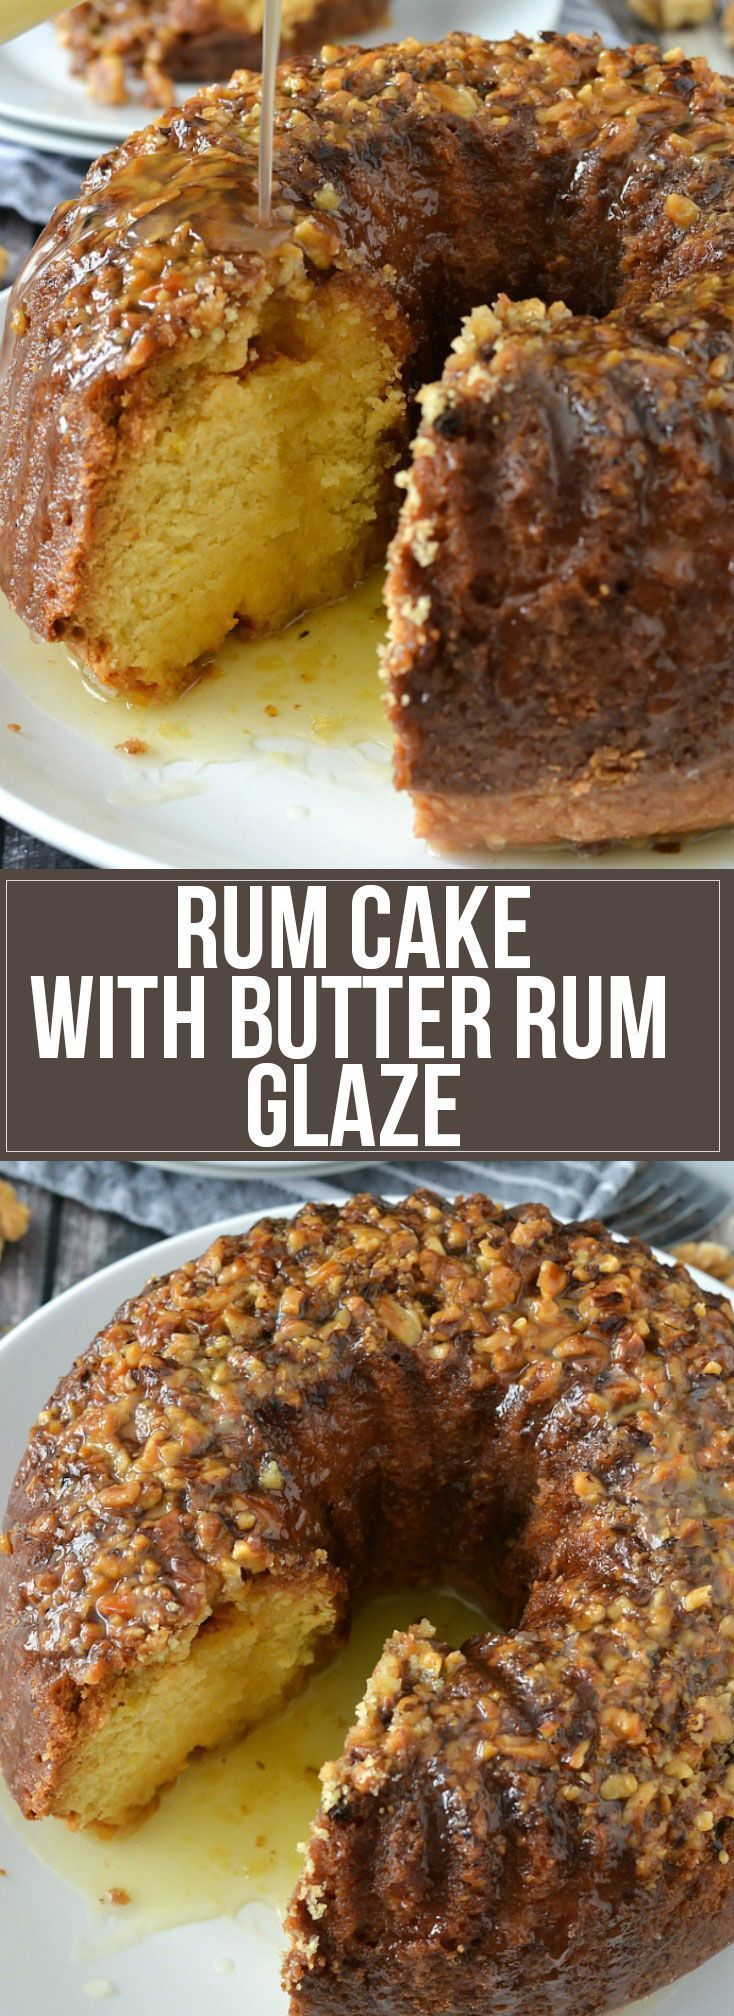 Cake Design Vanilla Rum Cake Recipe : Best 25+ Holiday Recipes ideas that you will like on ...